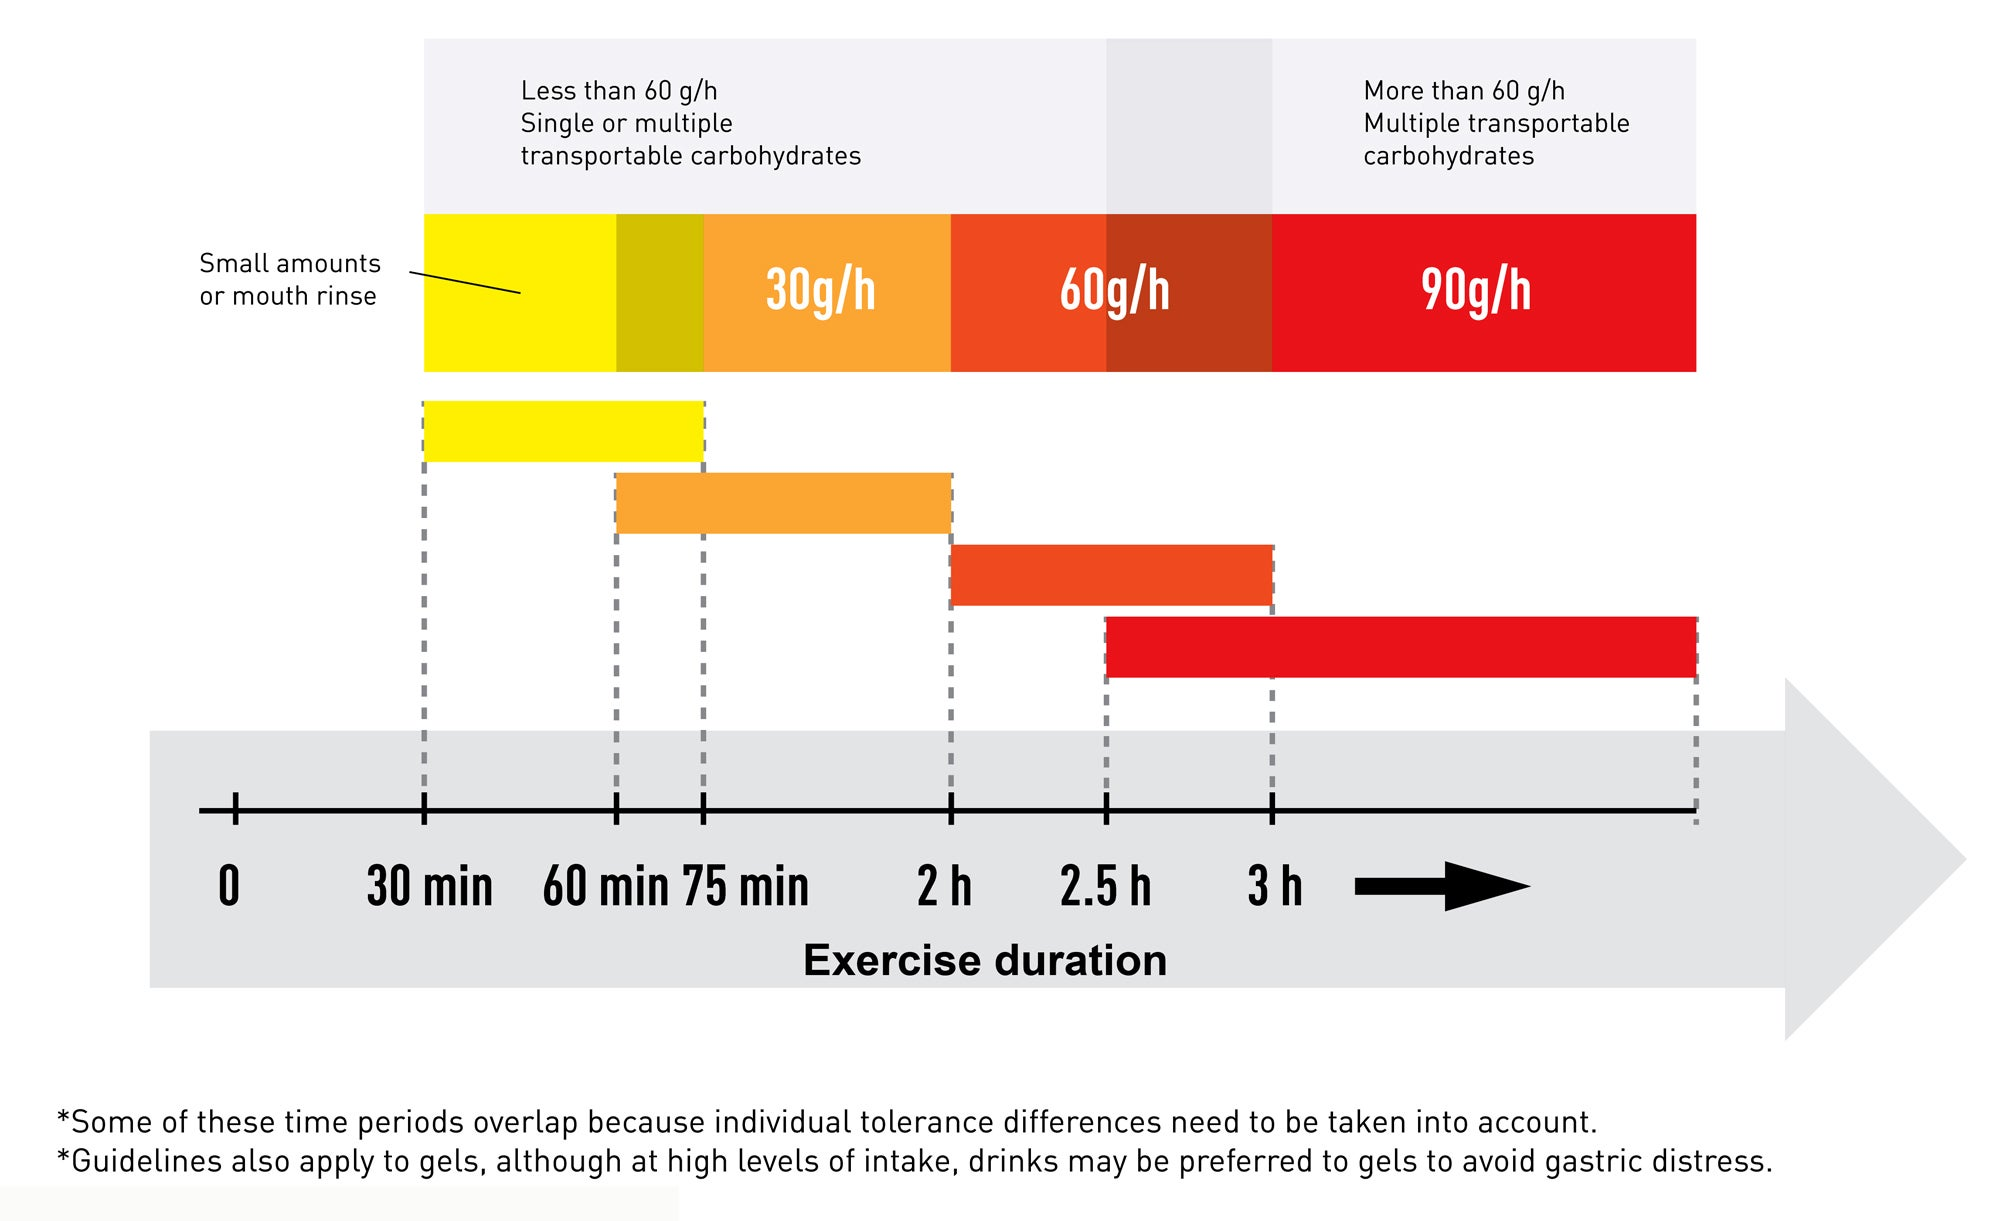 Exercise duration and carbohydrate intake recommendations